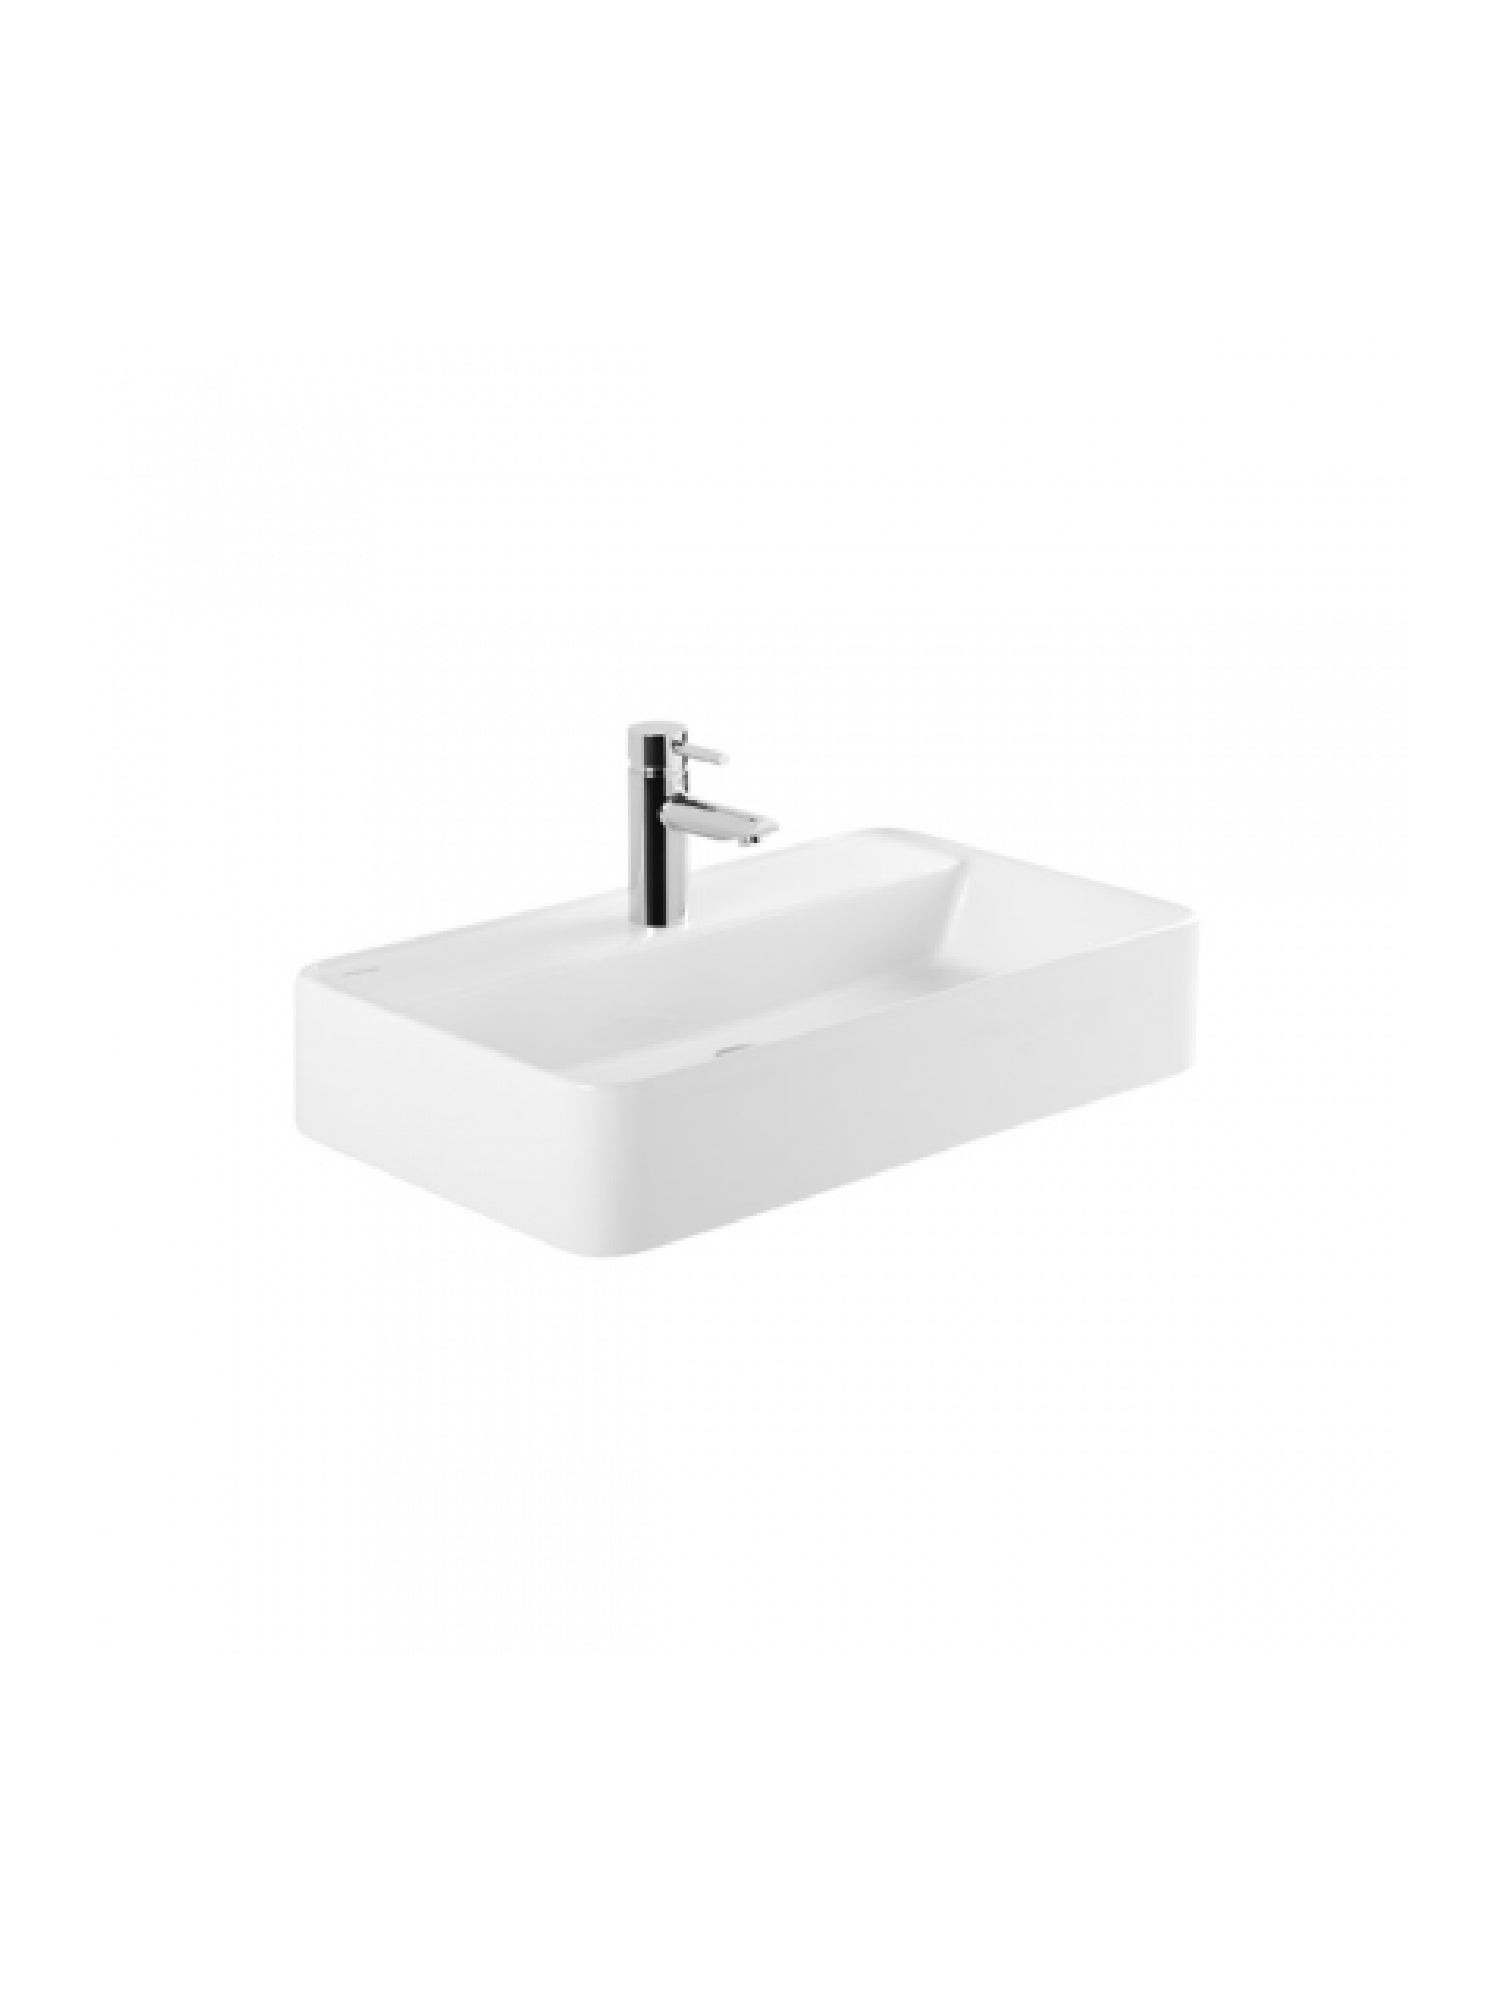 Sanlife Countertop Basin #136330